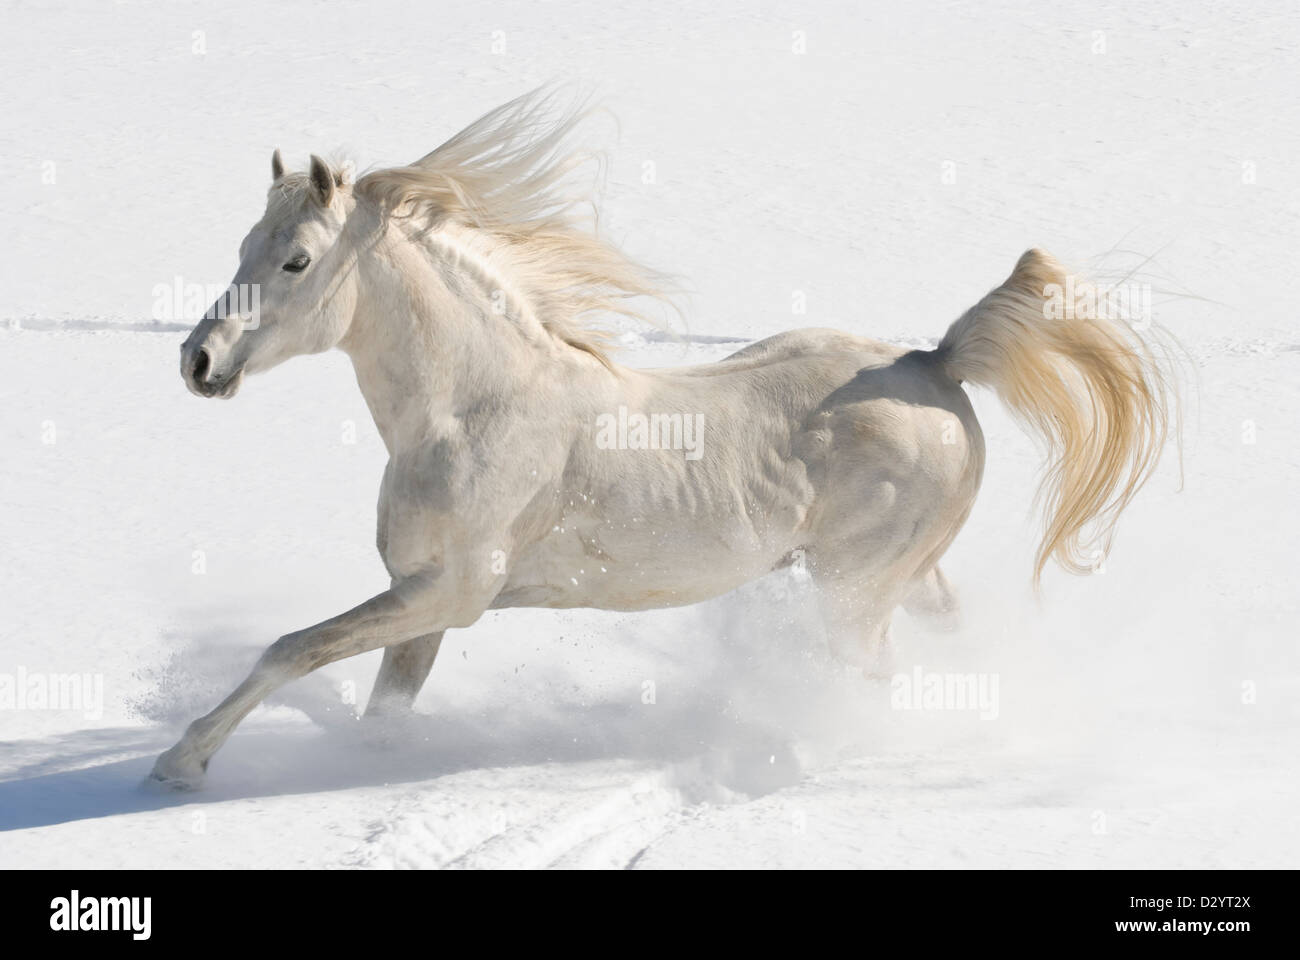 White horse running free in new fallen snow with mane and tail flying, a purebred Arabian stallion in motion at - Stock Image